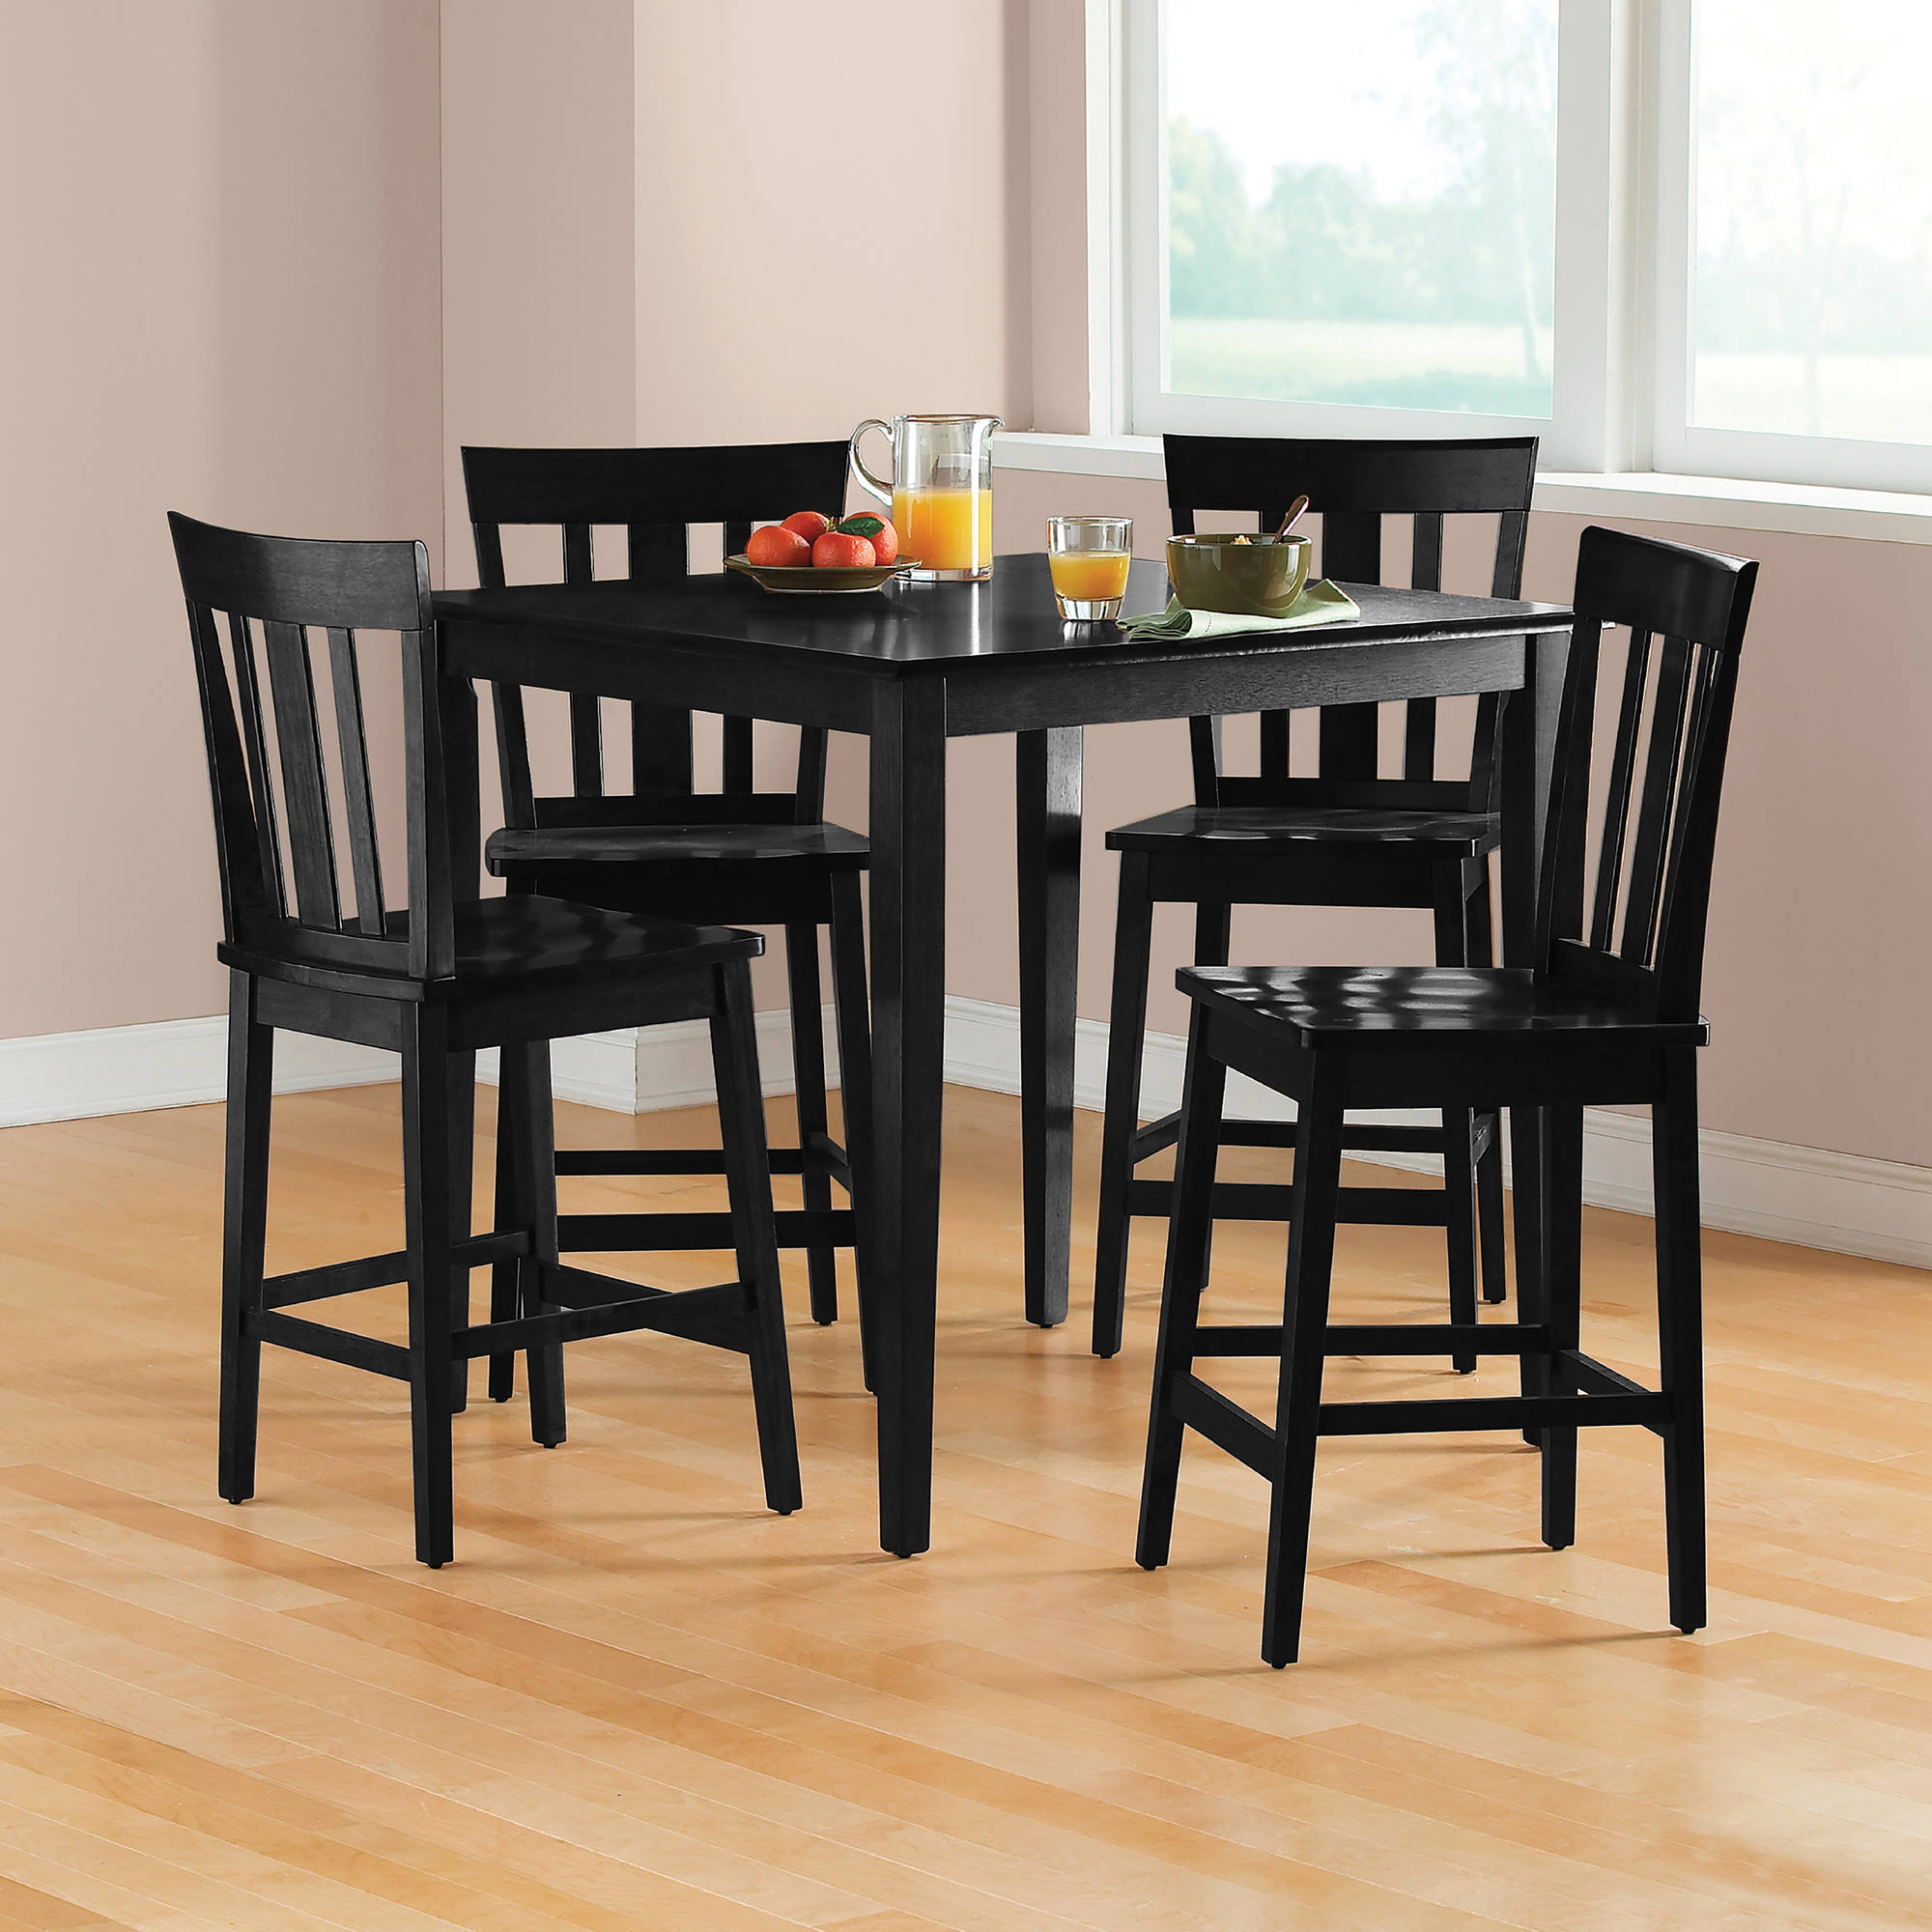 Well Liked Mainstays 5 Piece Mission Counter Height Dining Set – Walmart Within Goodman 5 Piece Solid Wood Dining Sets (Set Of 5) (View 24 of 25)